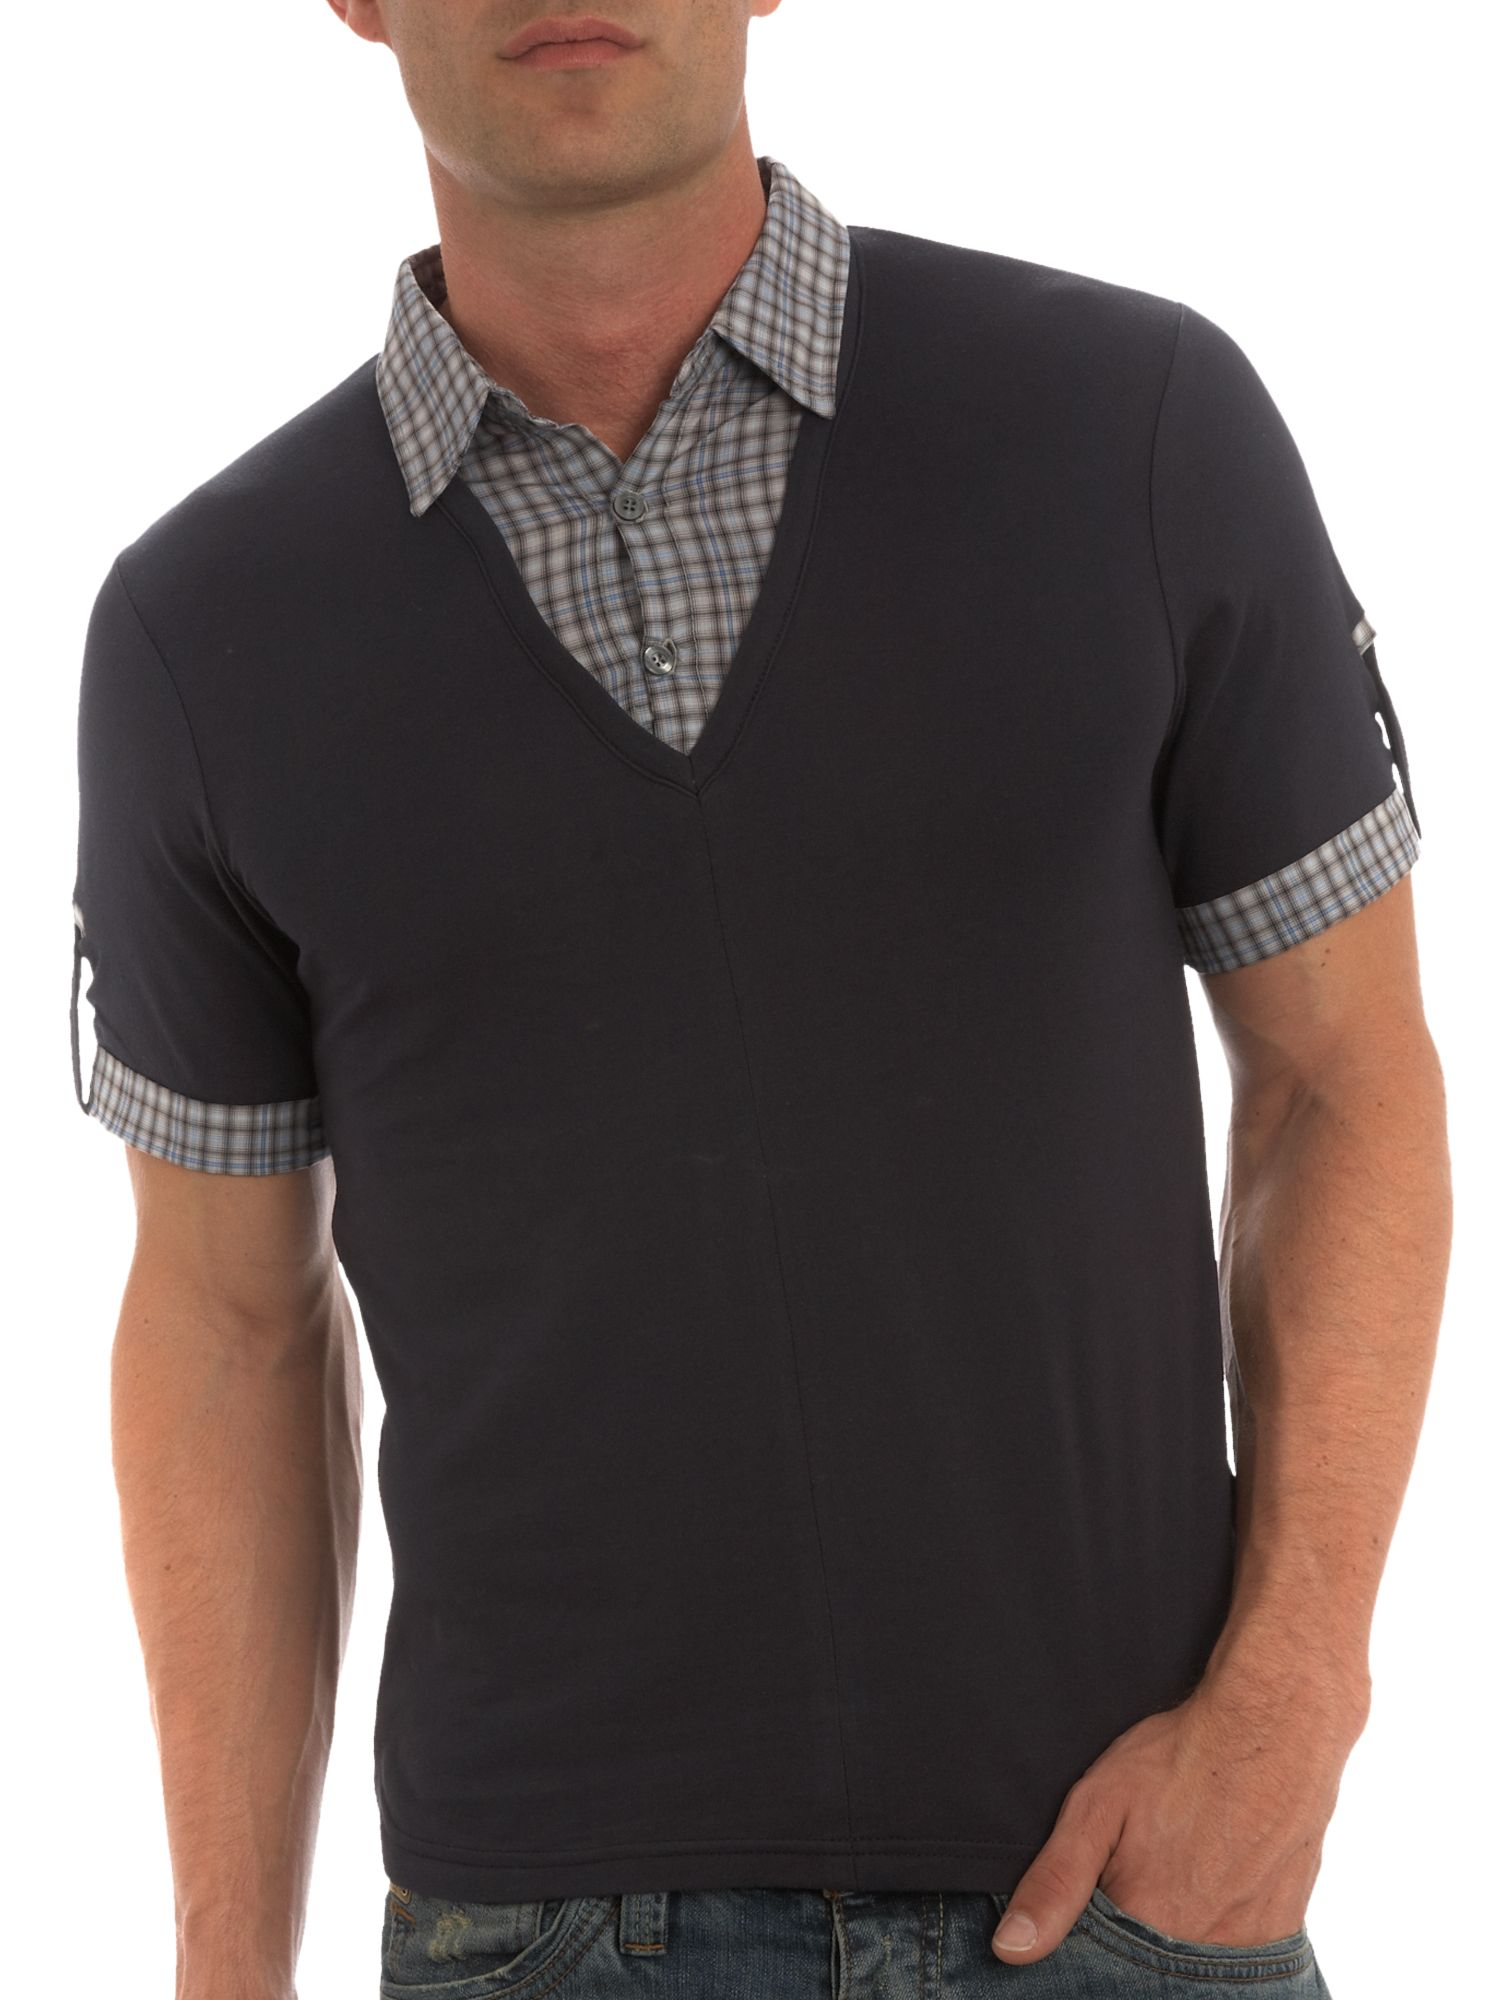 Short-sleeved T-shirt with shirt